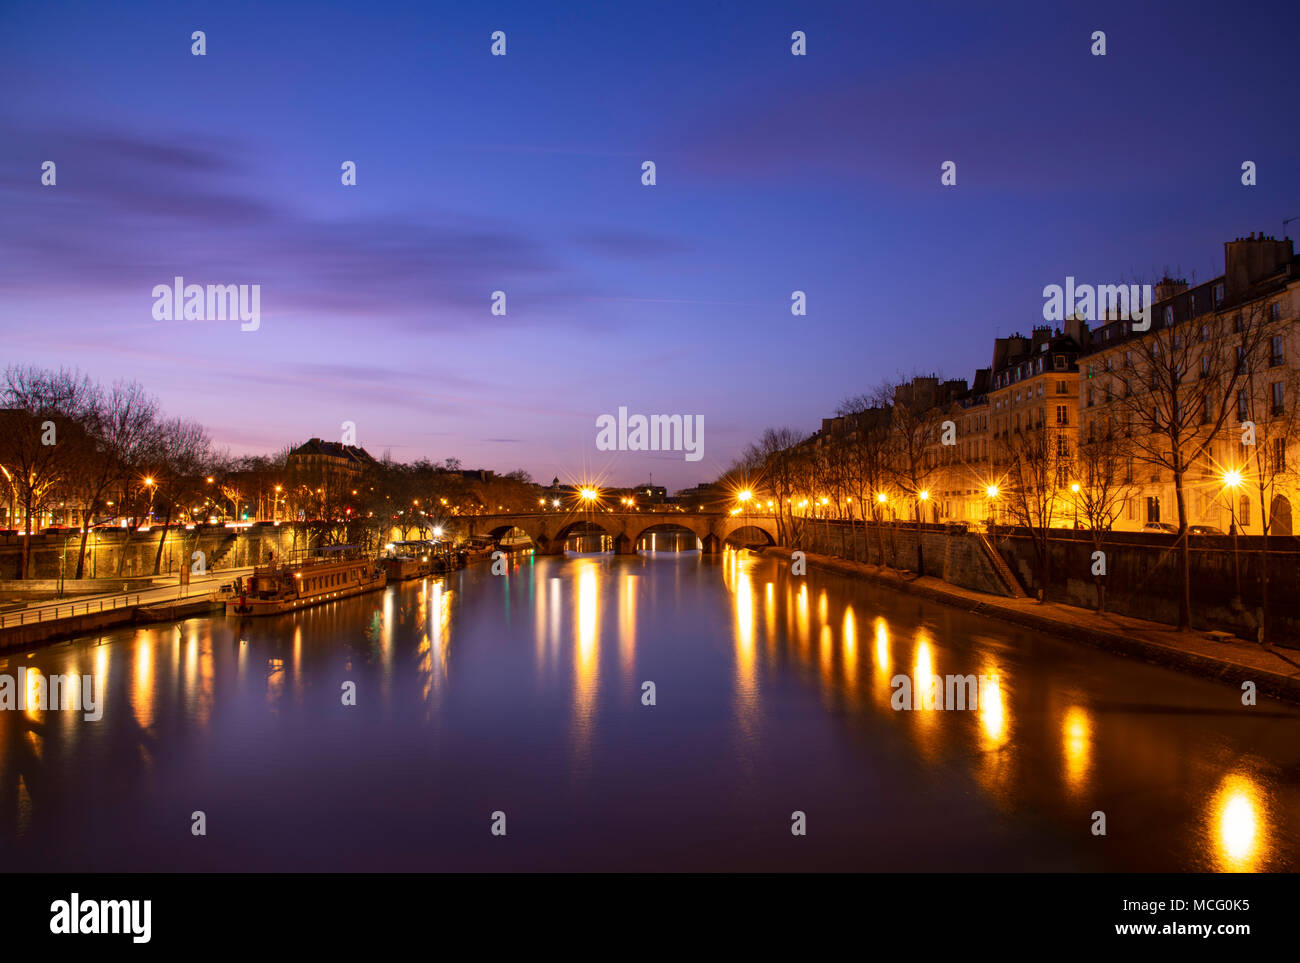 The Pont Marie over the Seine and the Il St Louis at dusk; Paris, France, Europe - Stock Image